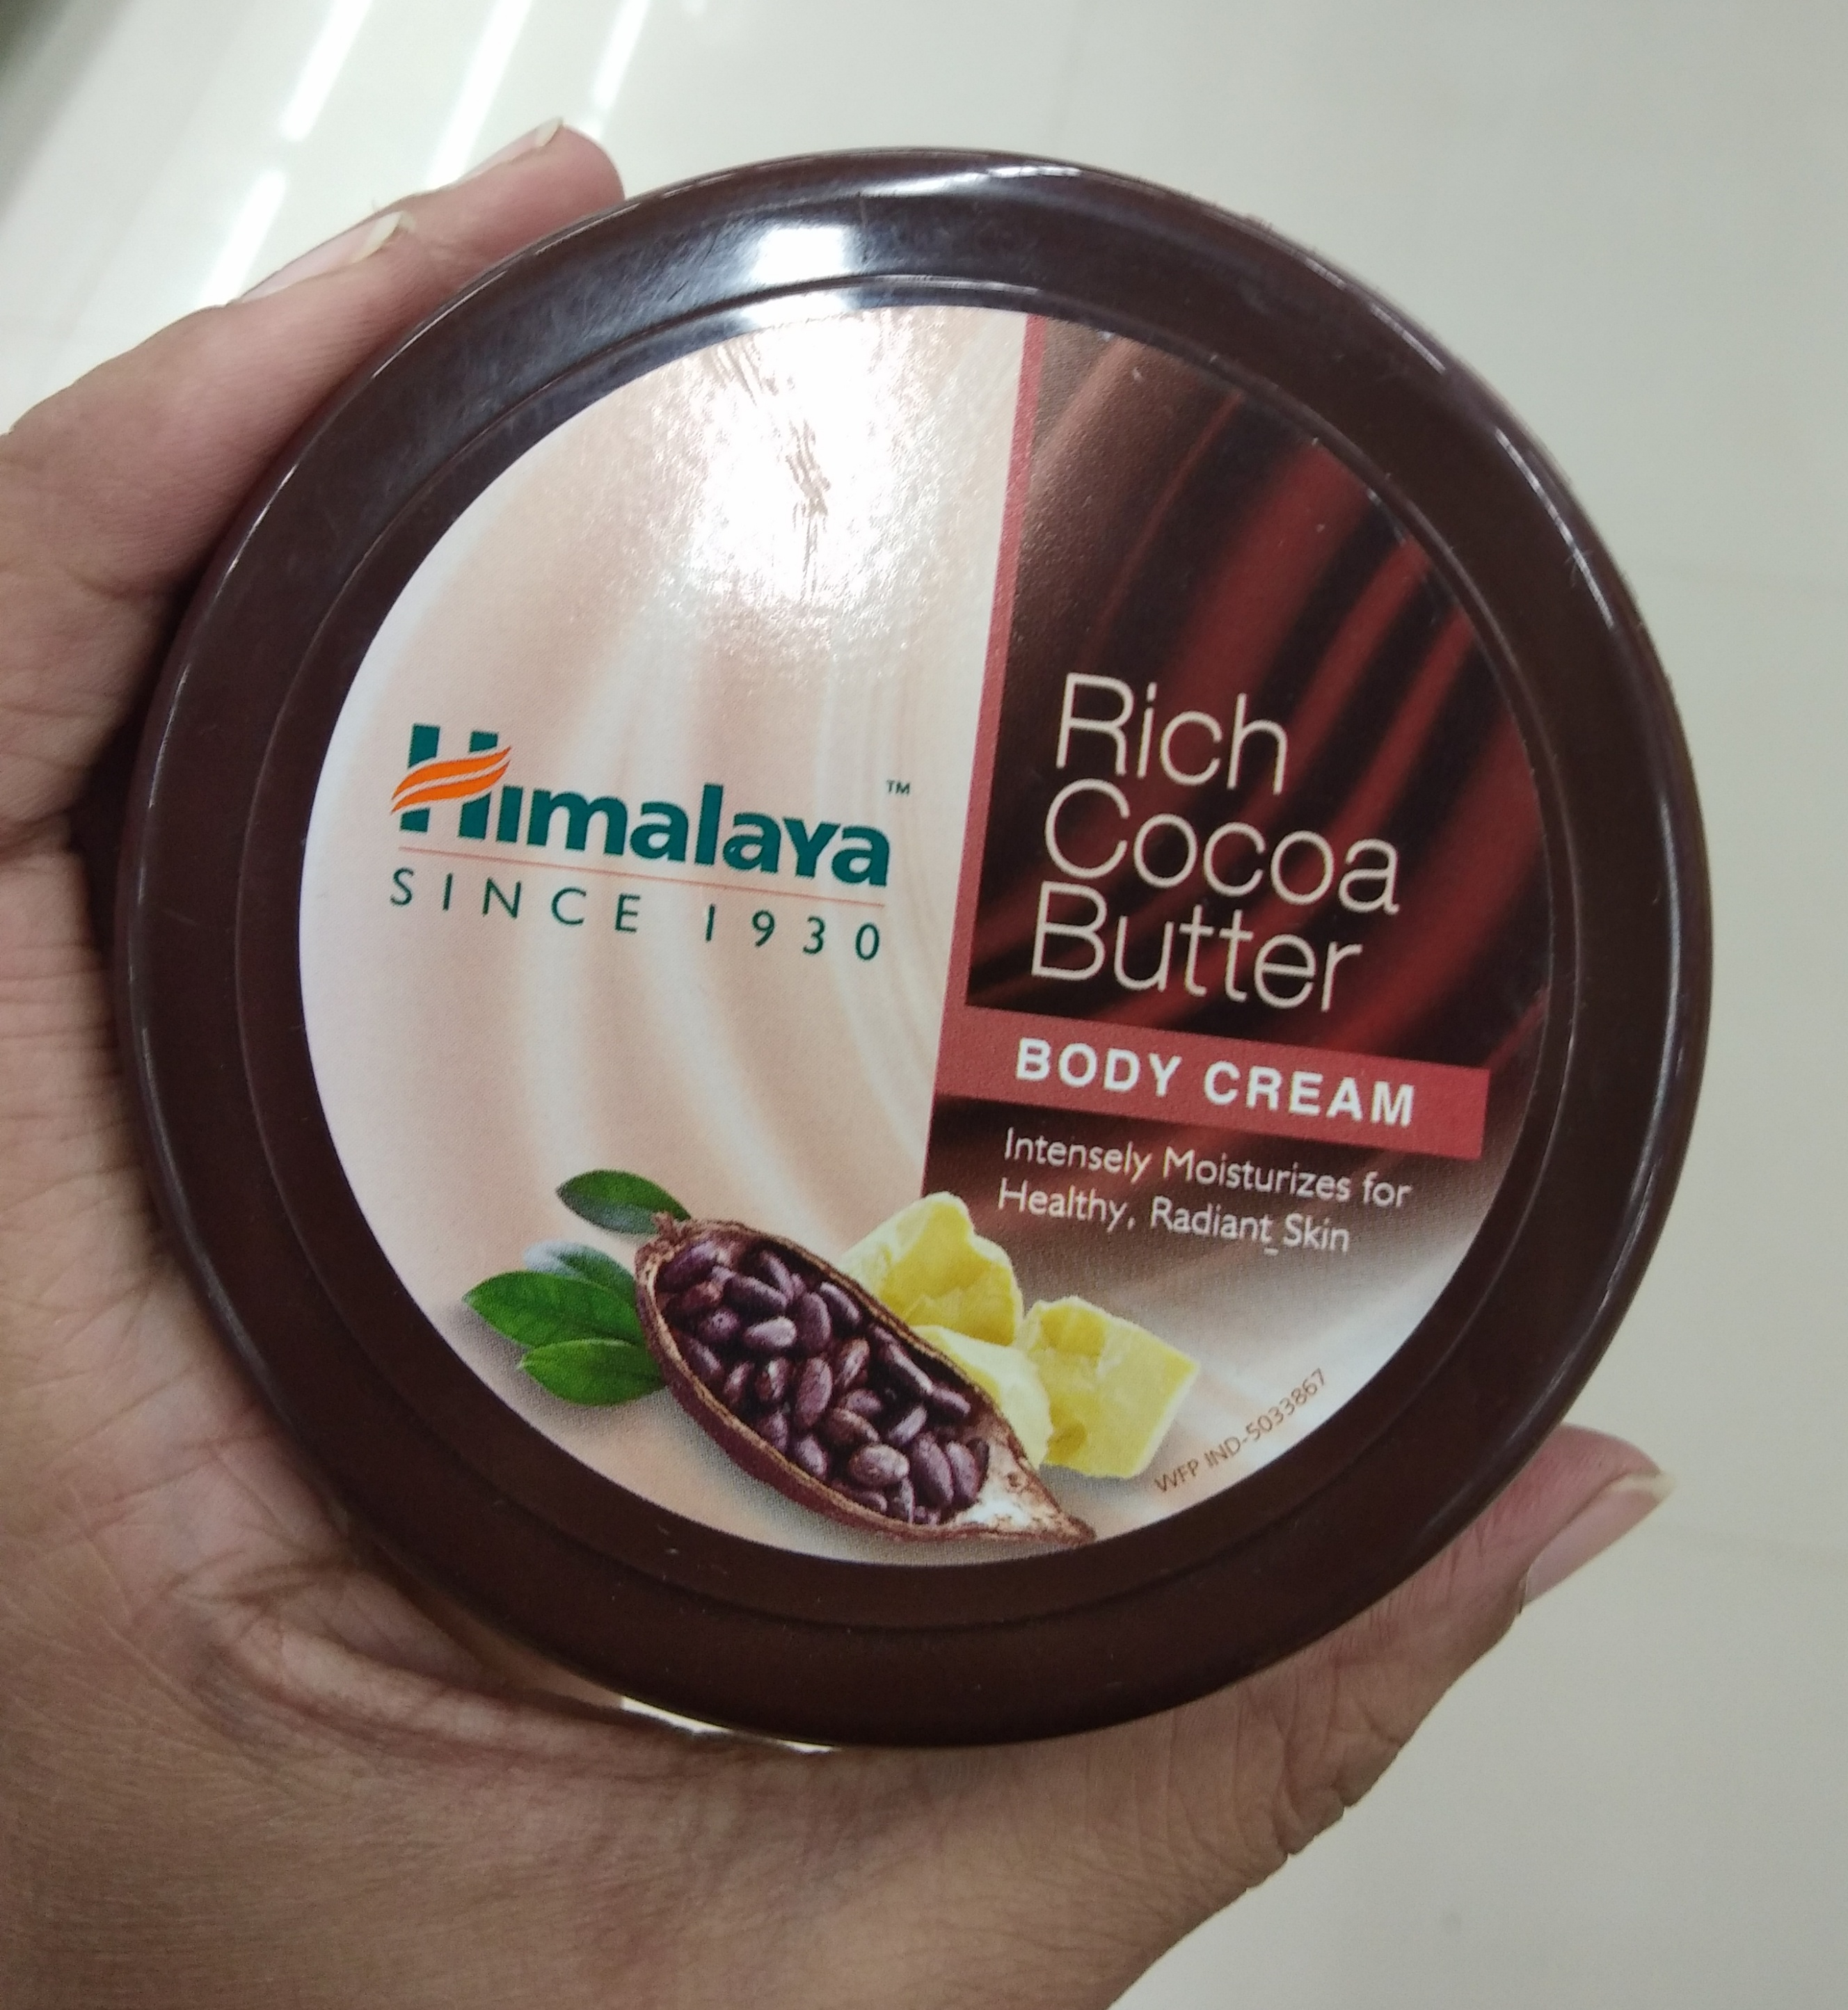 Himalaya Herbals Rich Cocoa Butter Body Cream pic 1-Awesome-By Nasreen